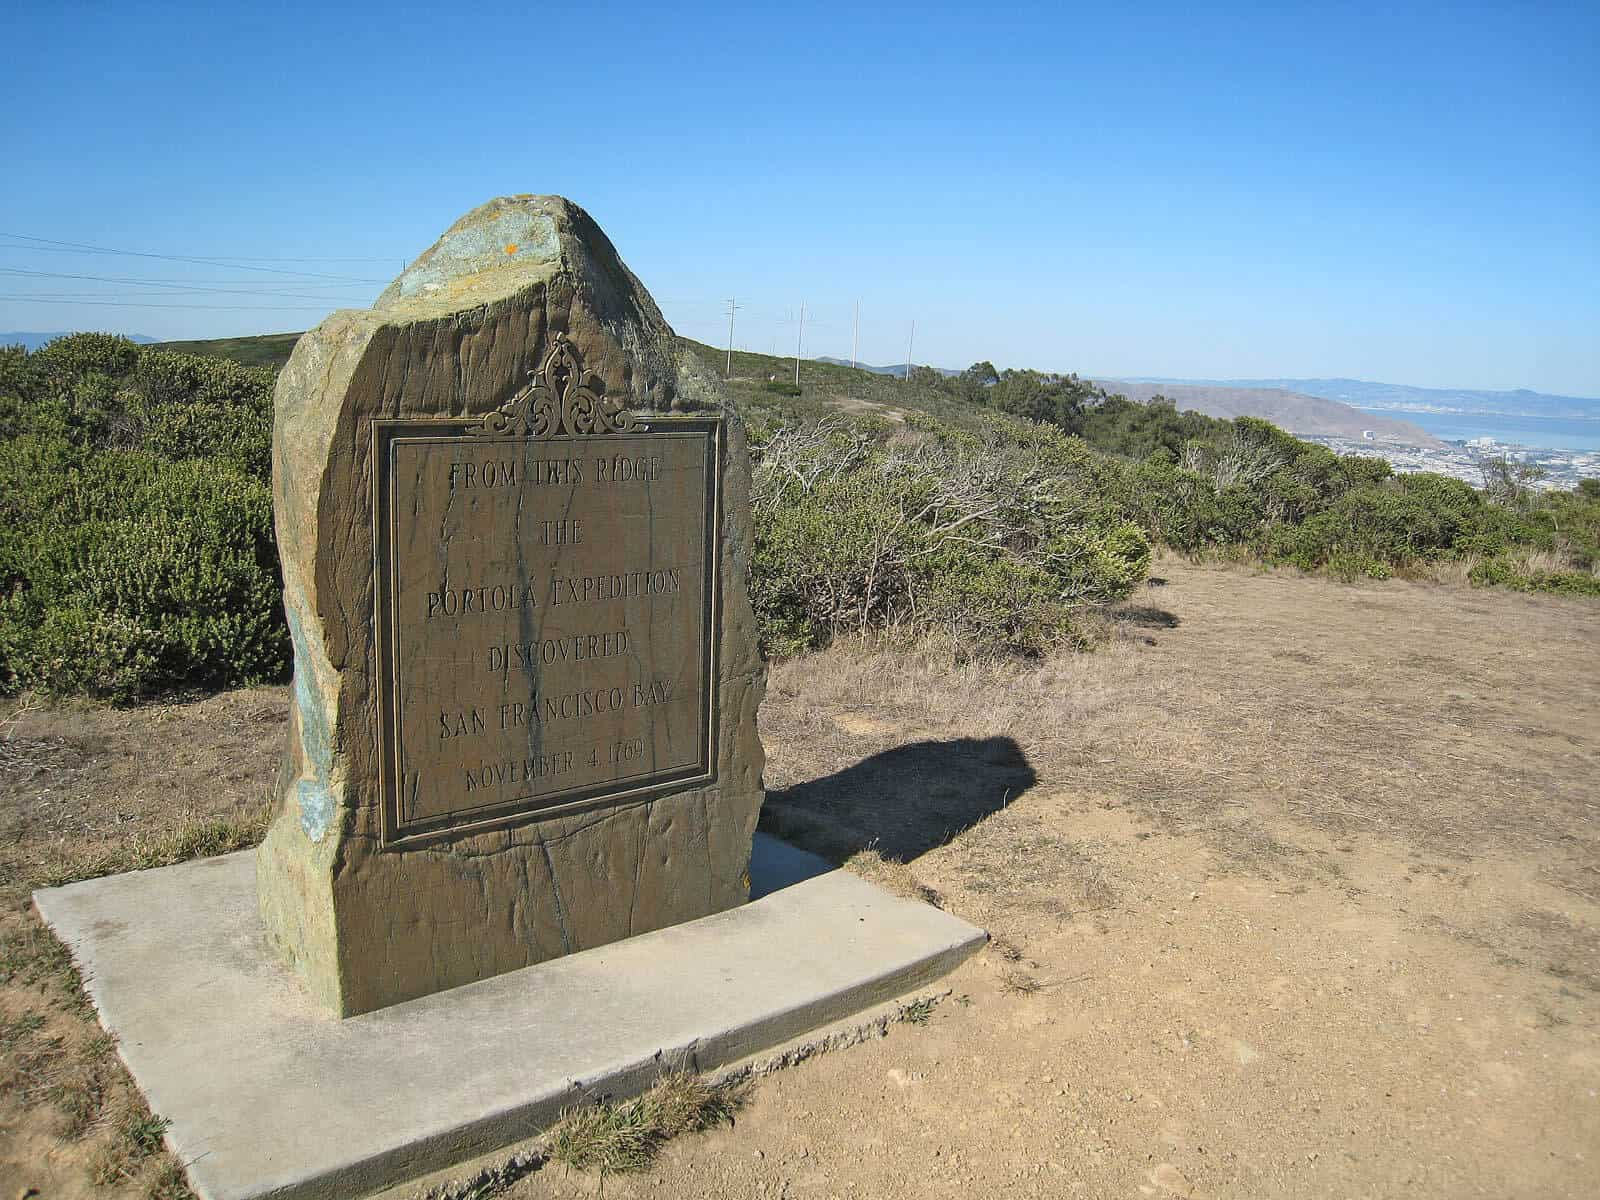 The San Francisco Bay Discovery Site on Sweeney Ridge